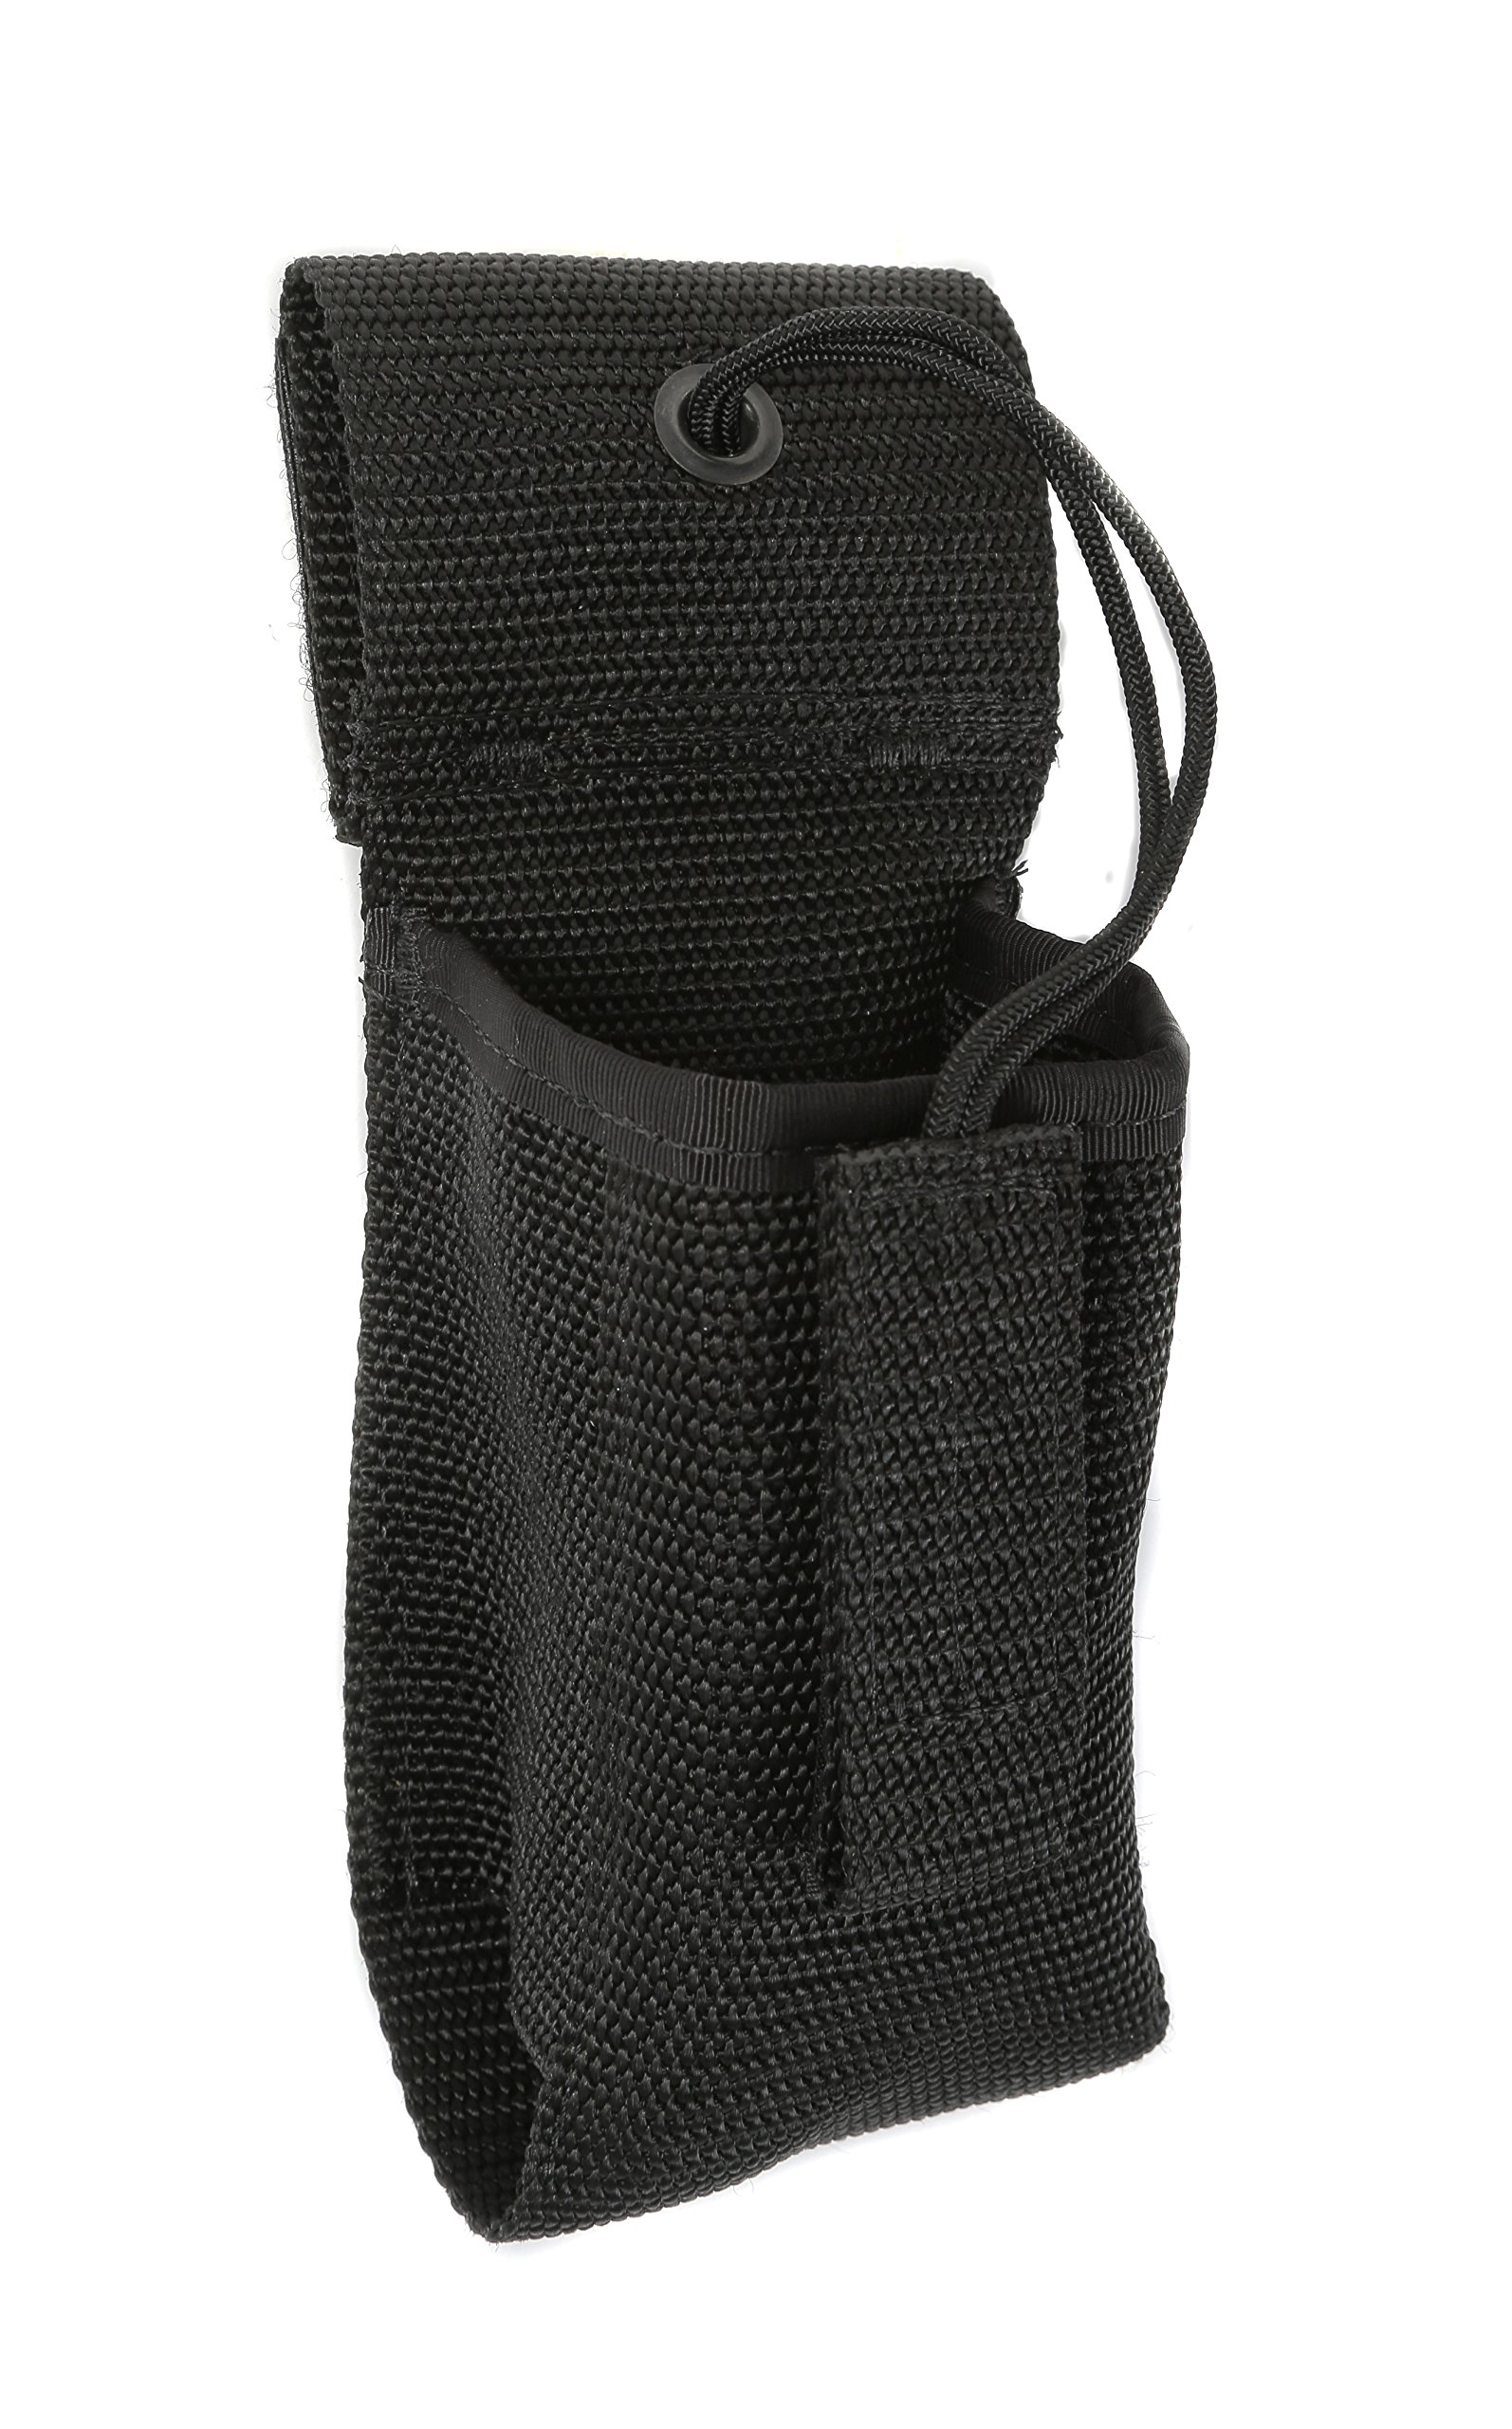 Raine Adjustable Two-Way Radio Case, Black